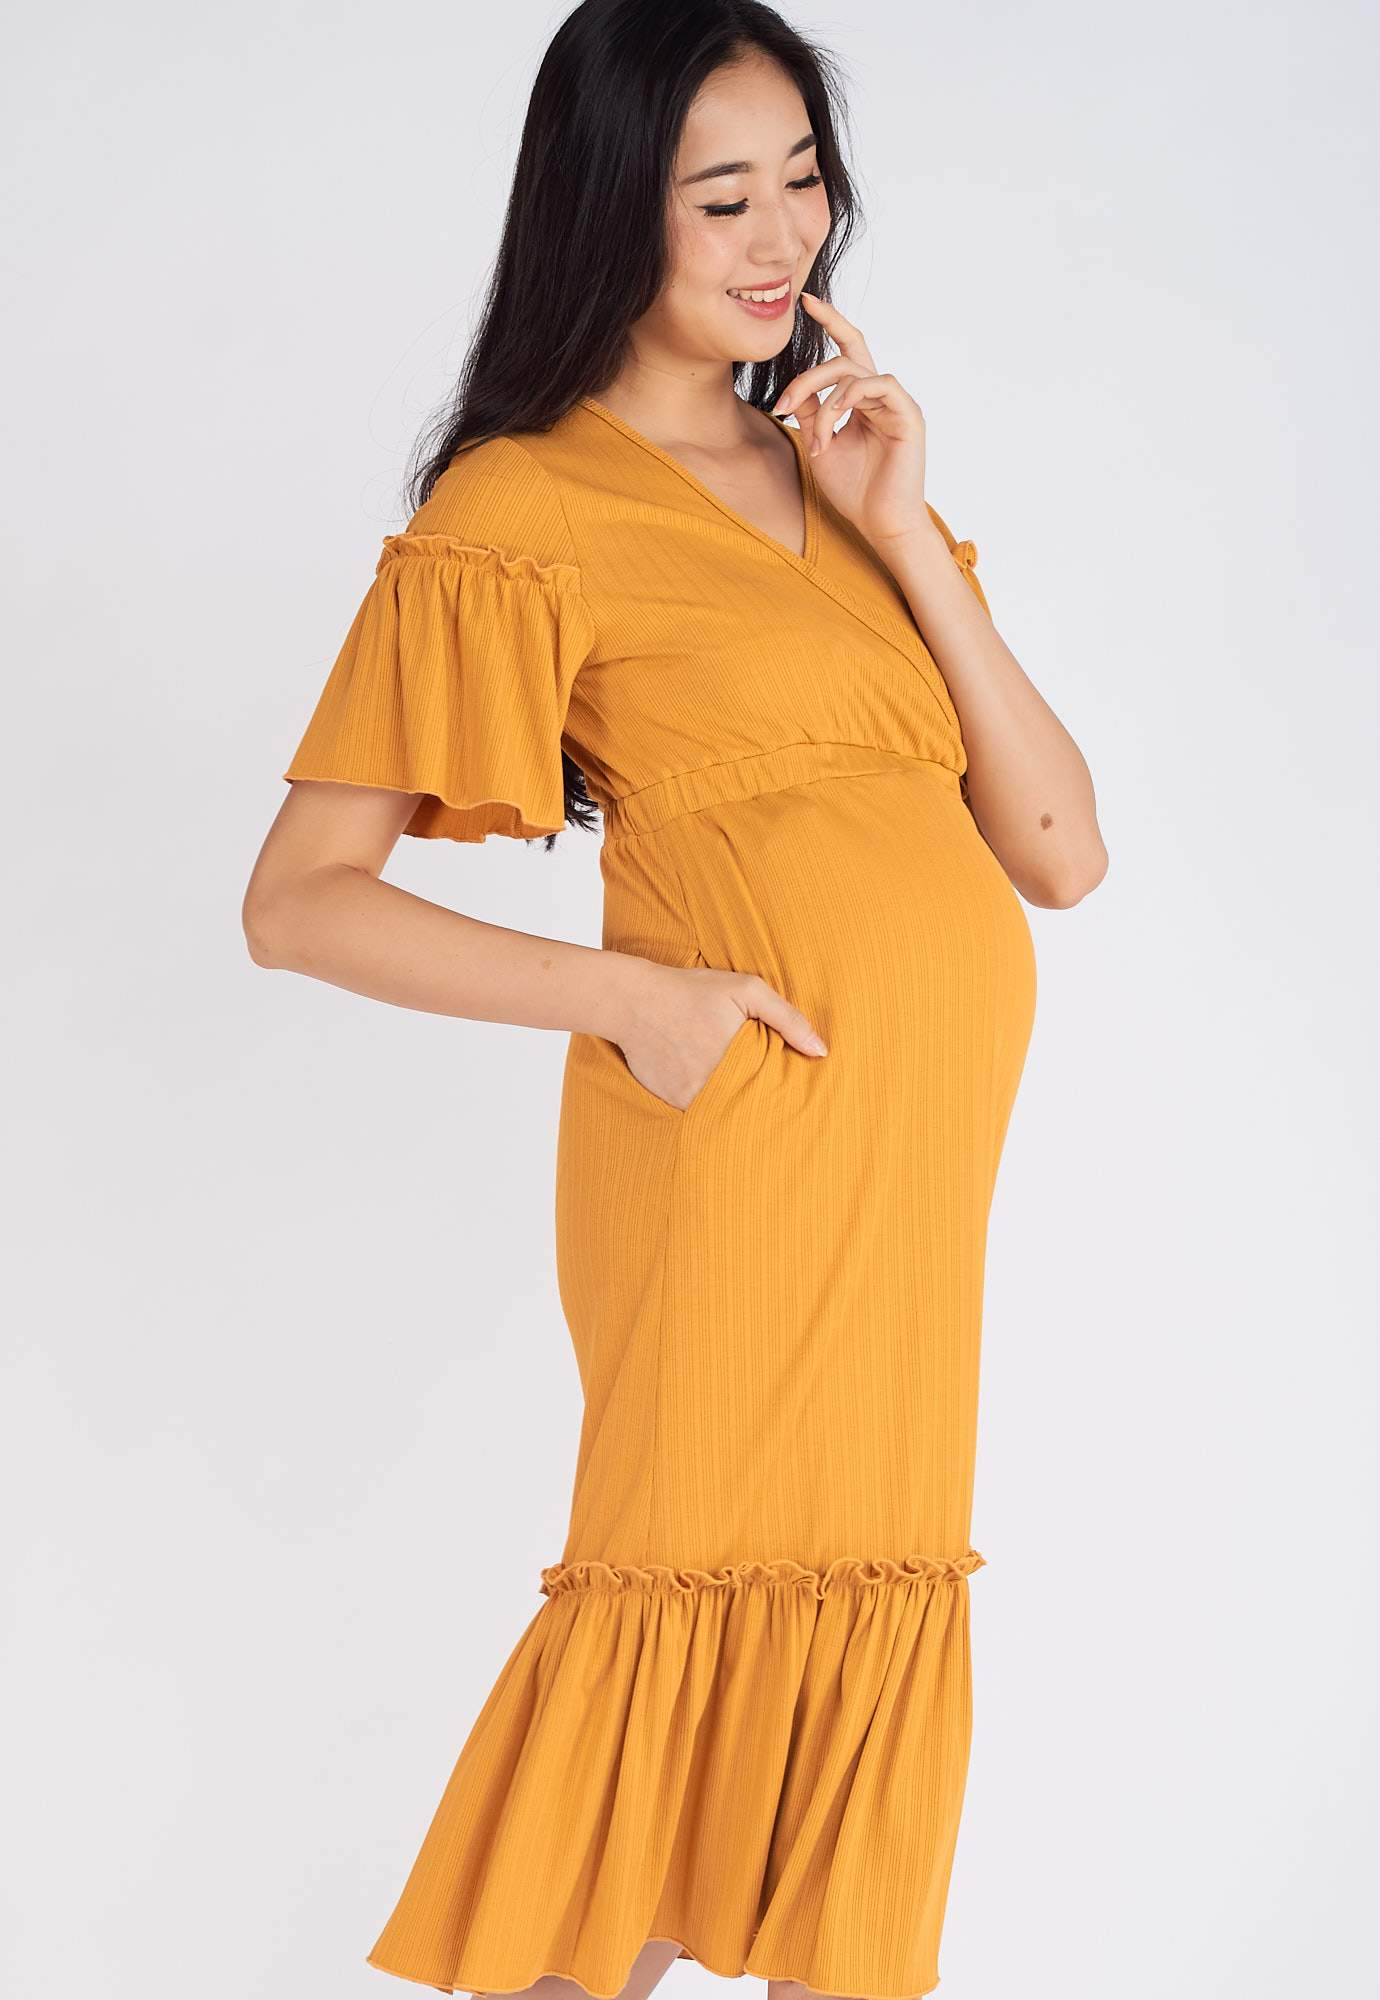 Rikku Ruffled Nursing Dress in Yellow  by Jump Eat Cry - Maternity and nursing wear